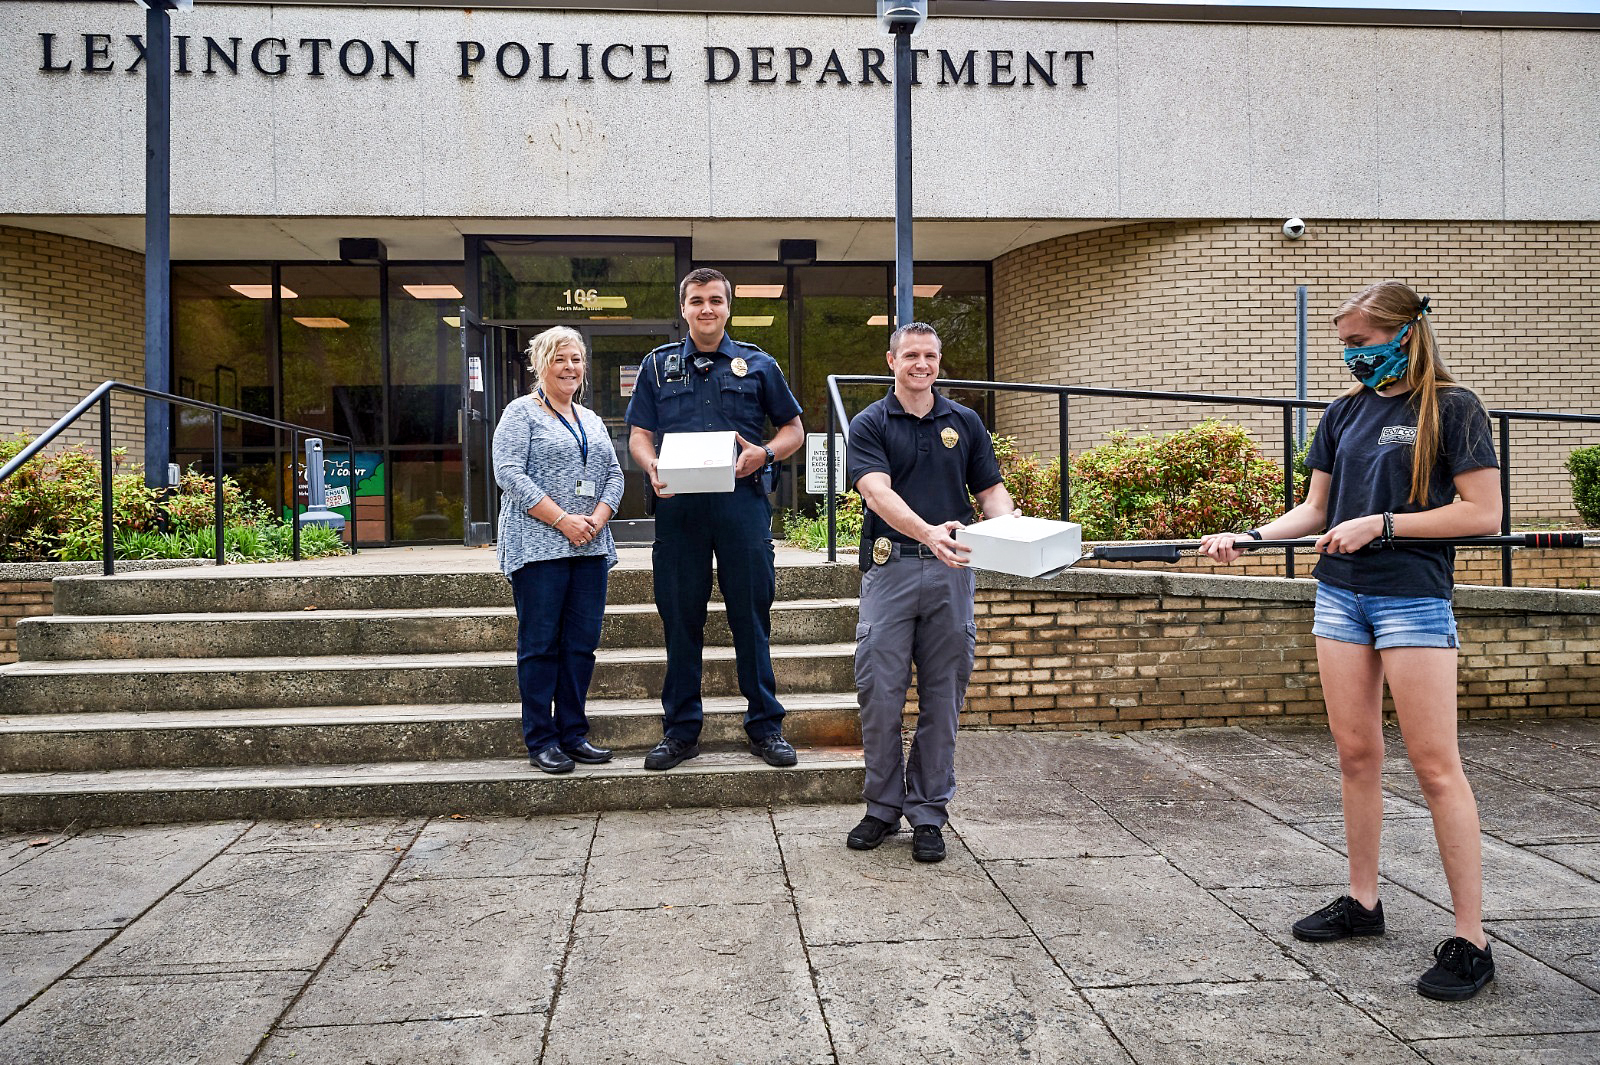 Gray Ledbetter delivering donuts to Lexington Police Department